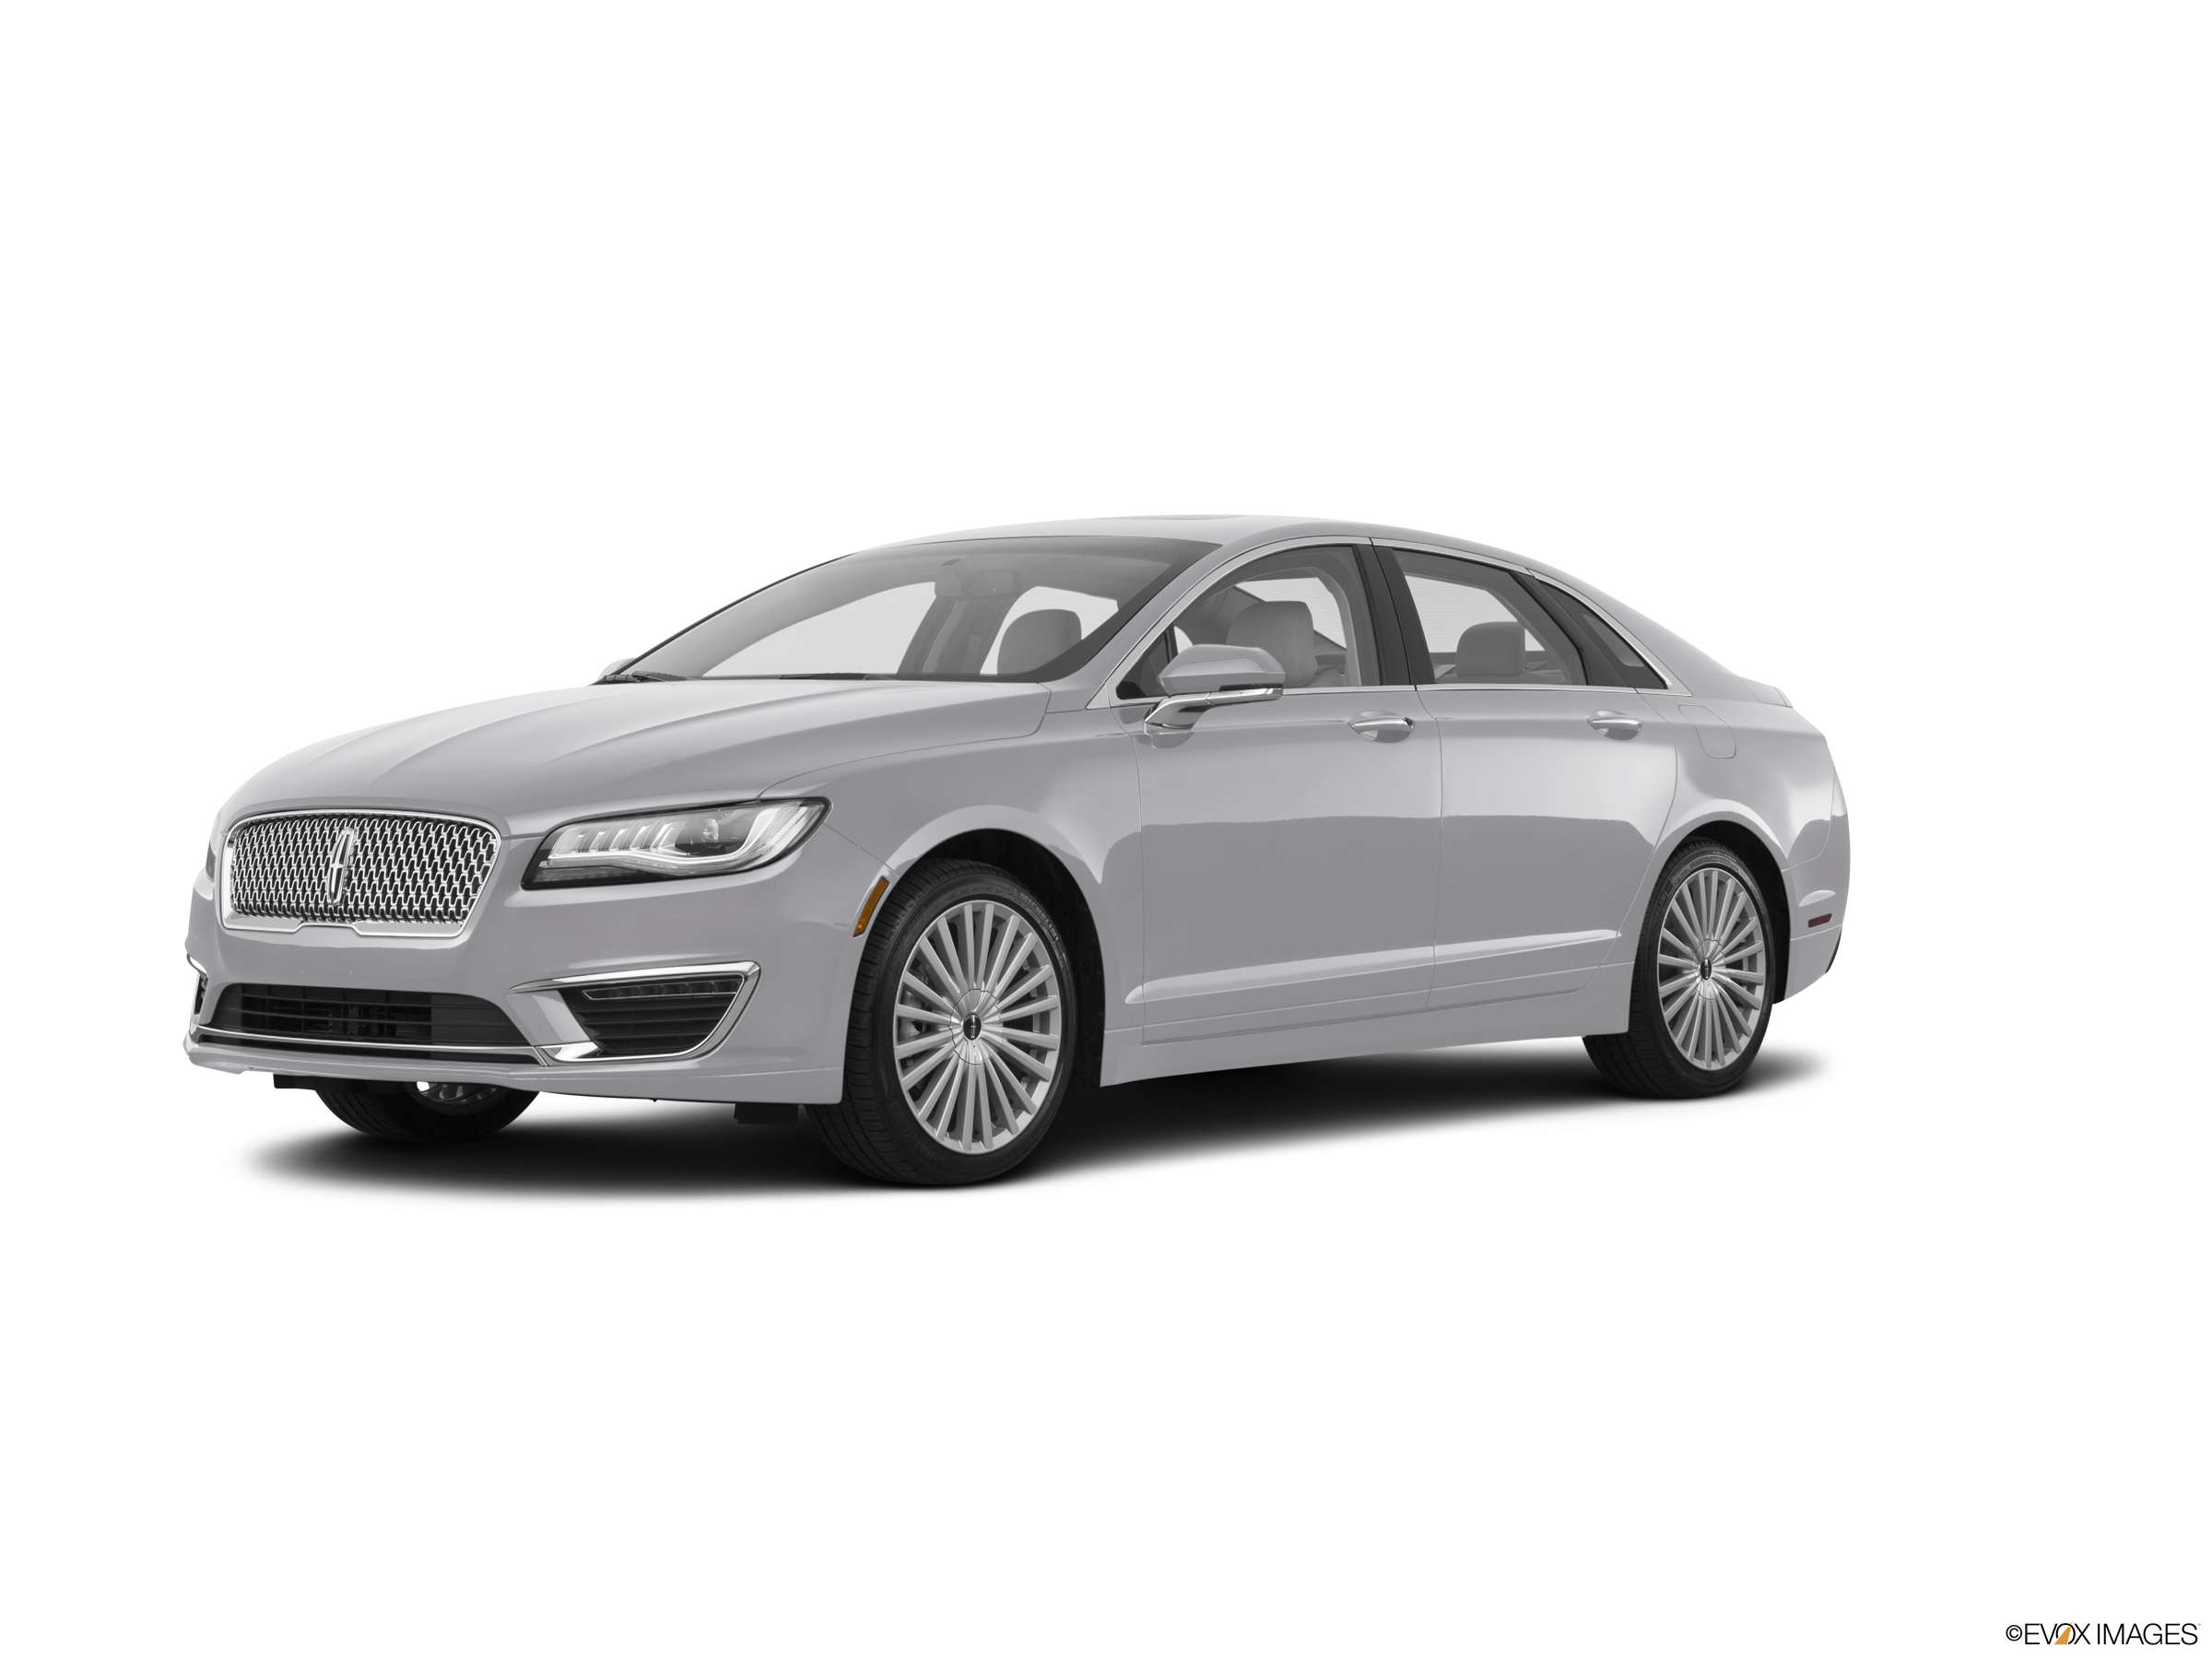 Most Fuel Efficient Luxury Vehicles of 2017 - 2017 Lincoln MKZ